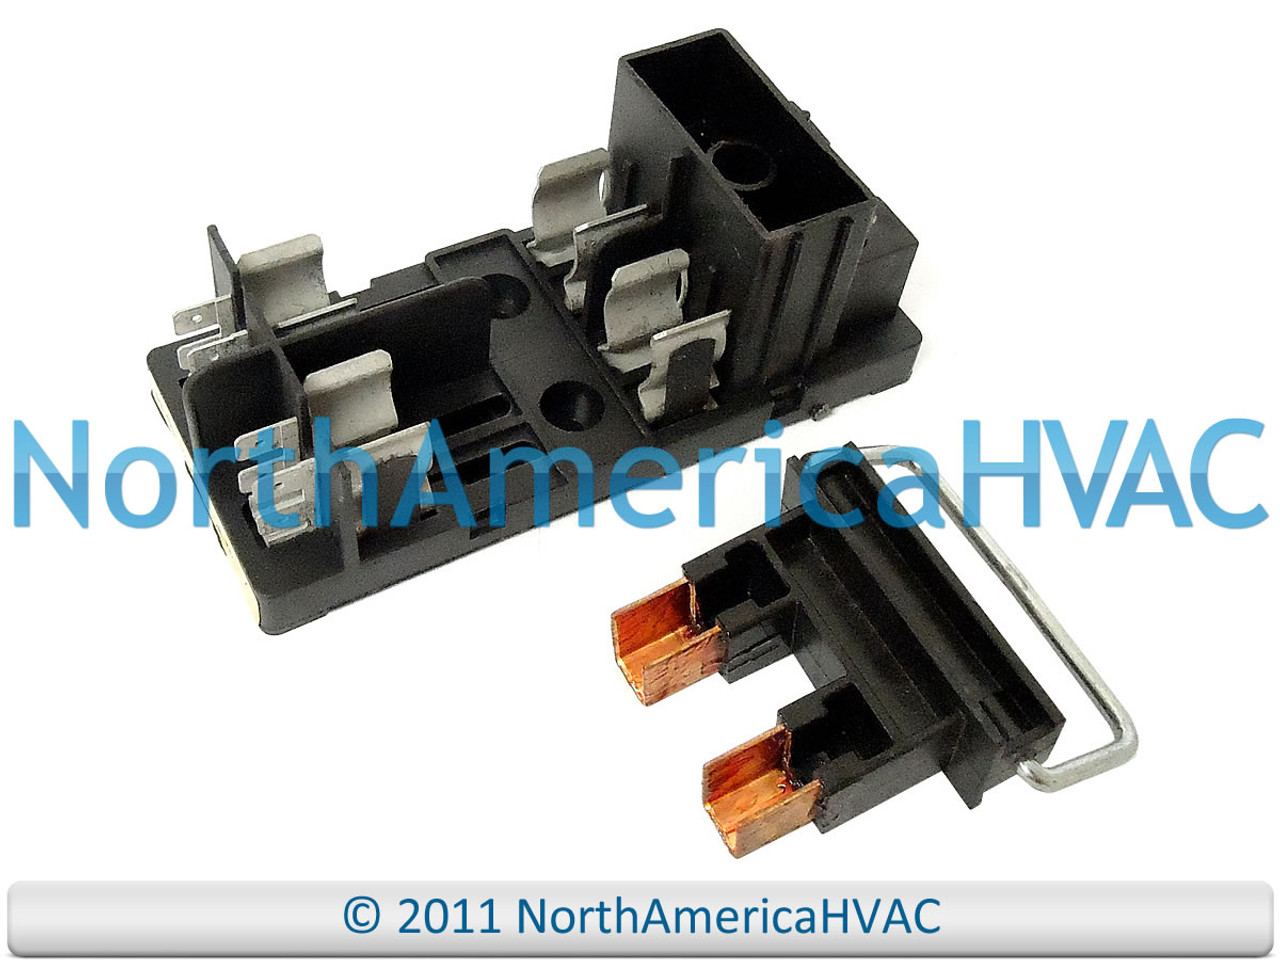 [WQZT_9871]  Coleman 10KW 12KW Electric Furnace Fused Disconnect - North America HVAC | Intertherm Furnace Disconnect Fuse Box |  | North America HVAC